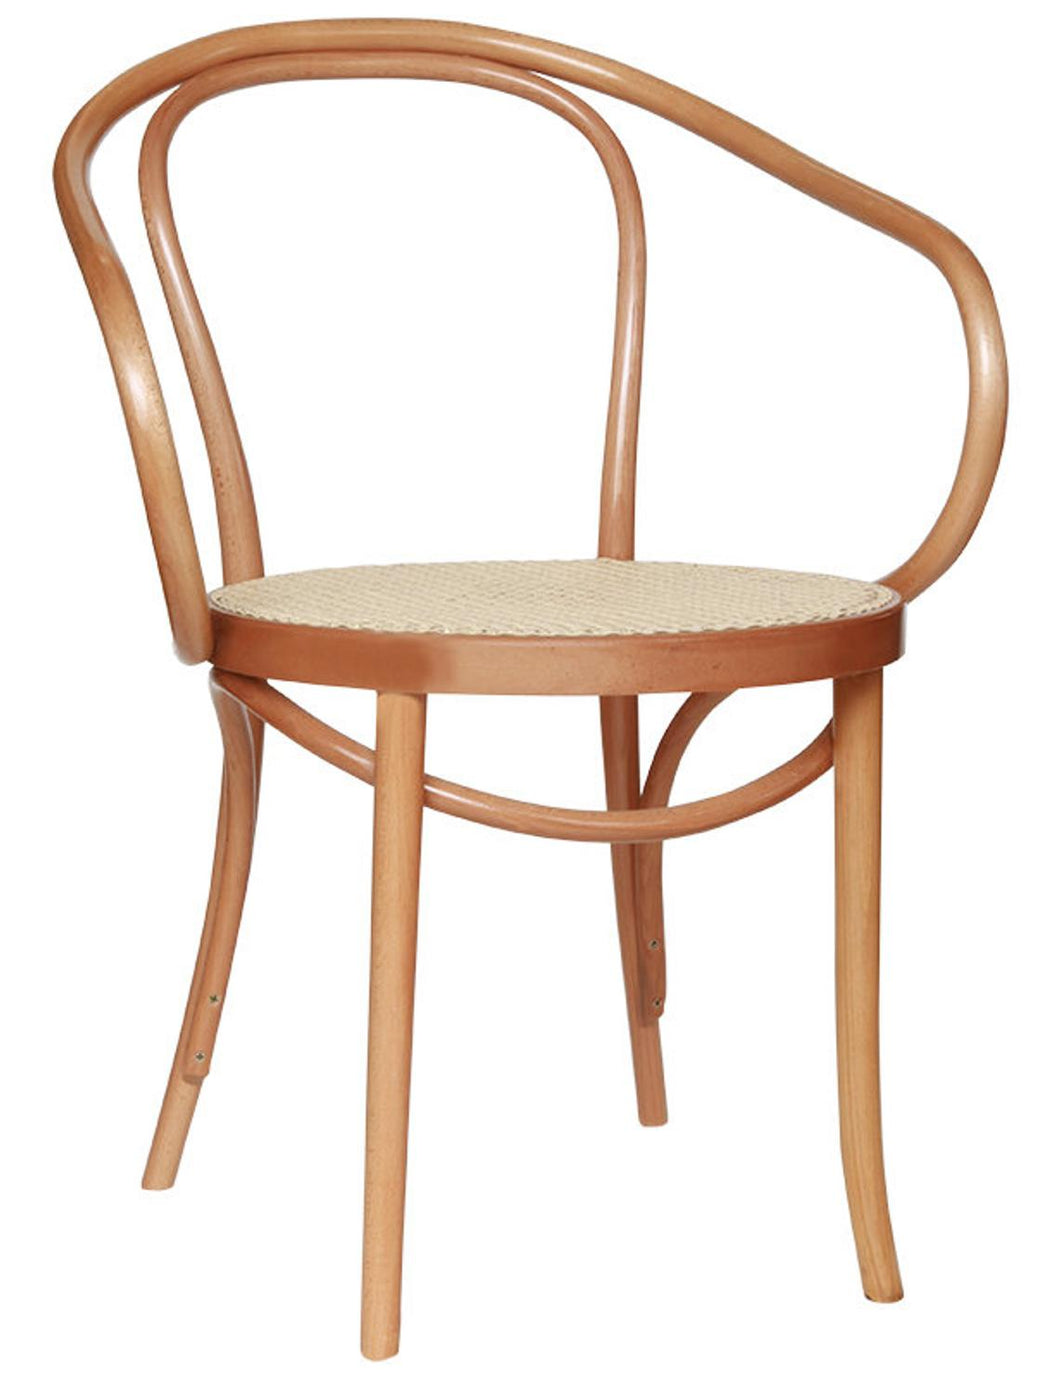 Thonet armchair - MANU Wooden Collection